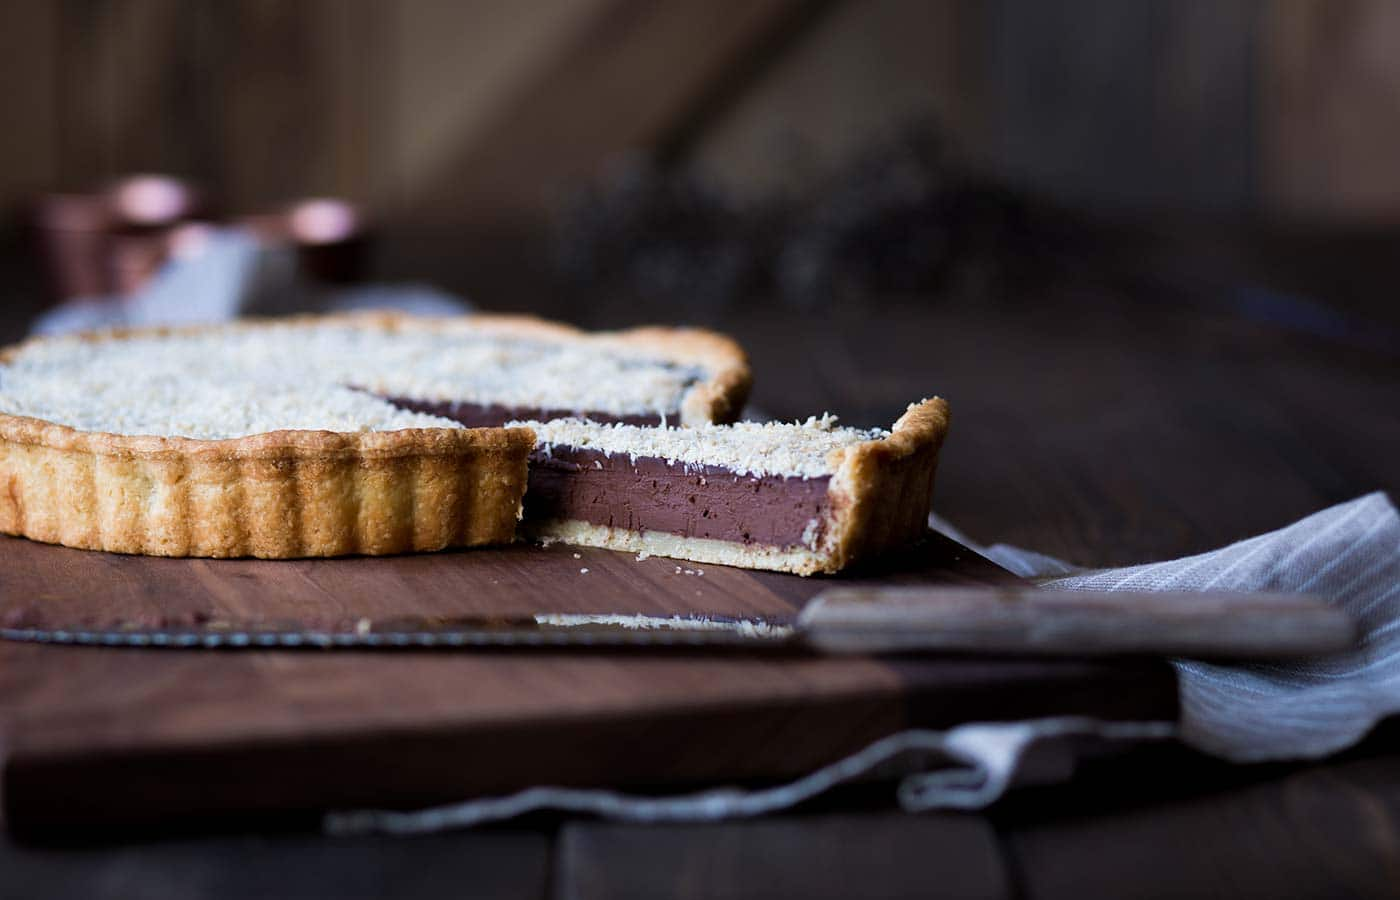 A slice of chocolate tart separated from the full tart.